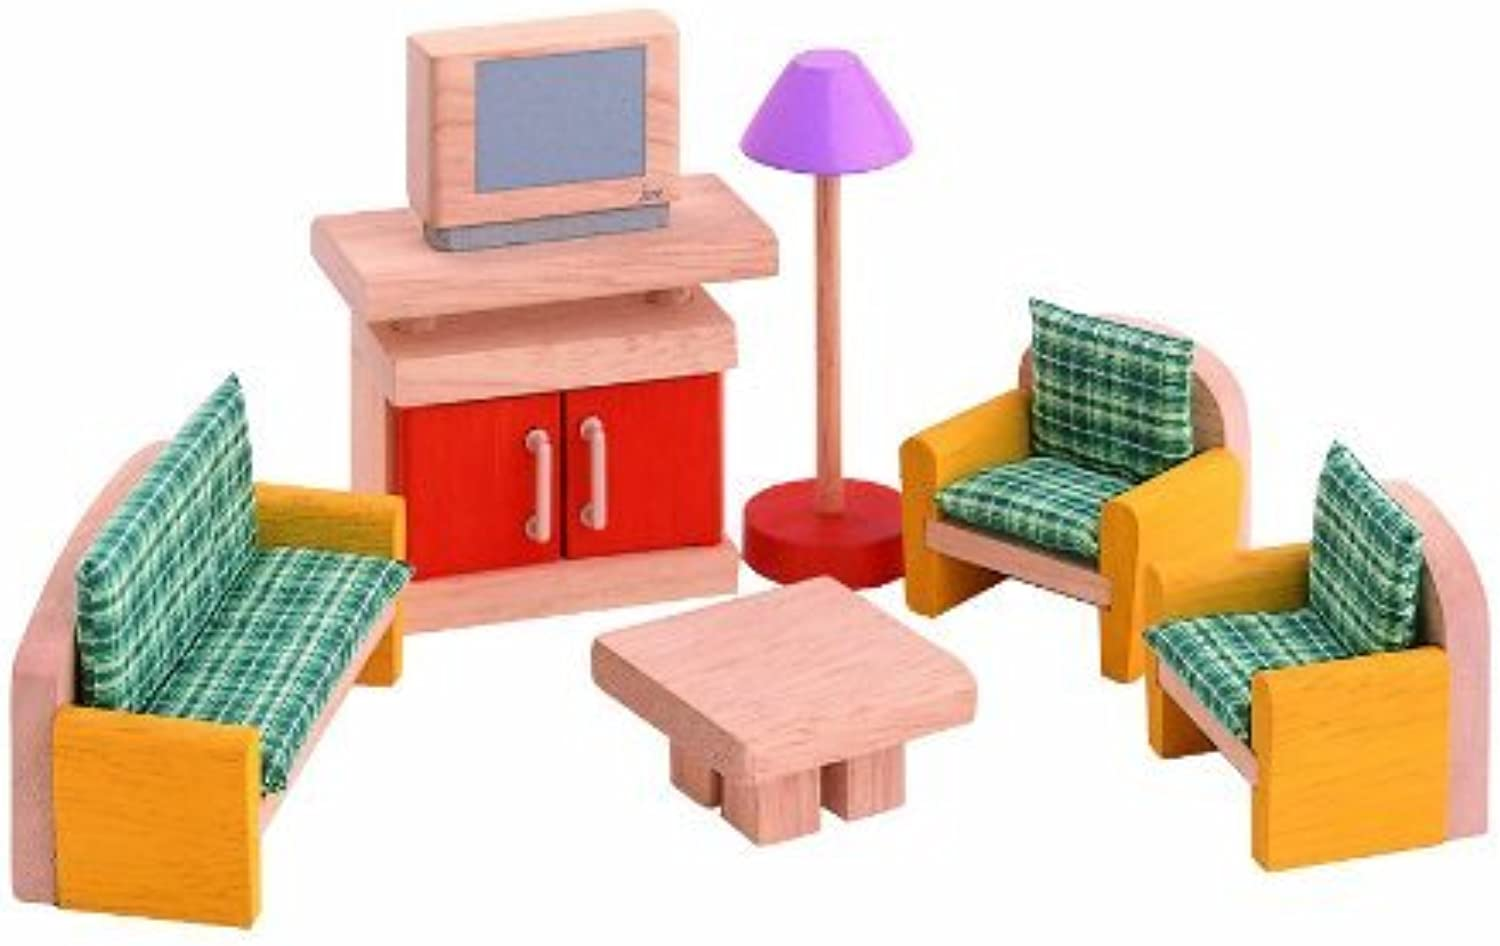 Plan Toys Living Room Set Neo by Plan Toys